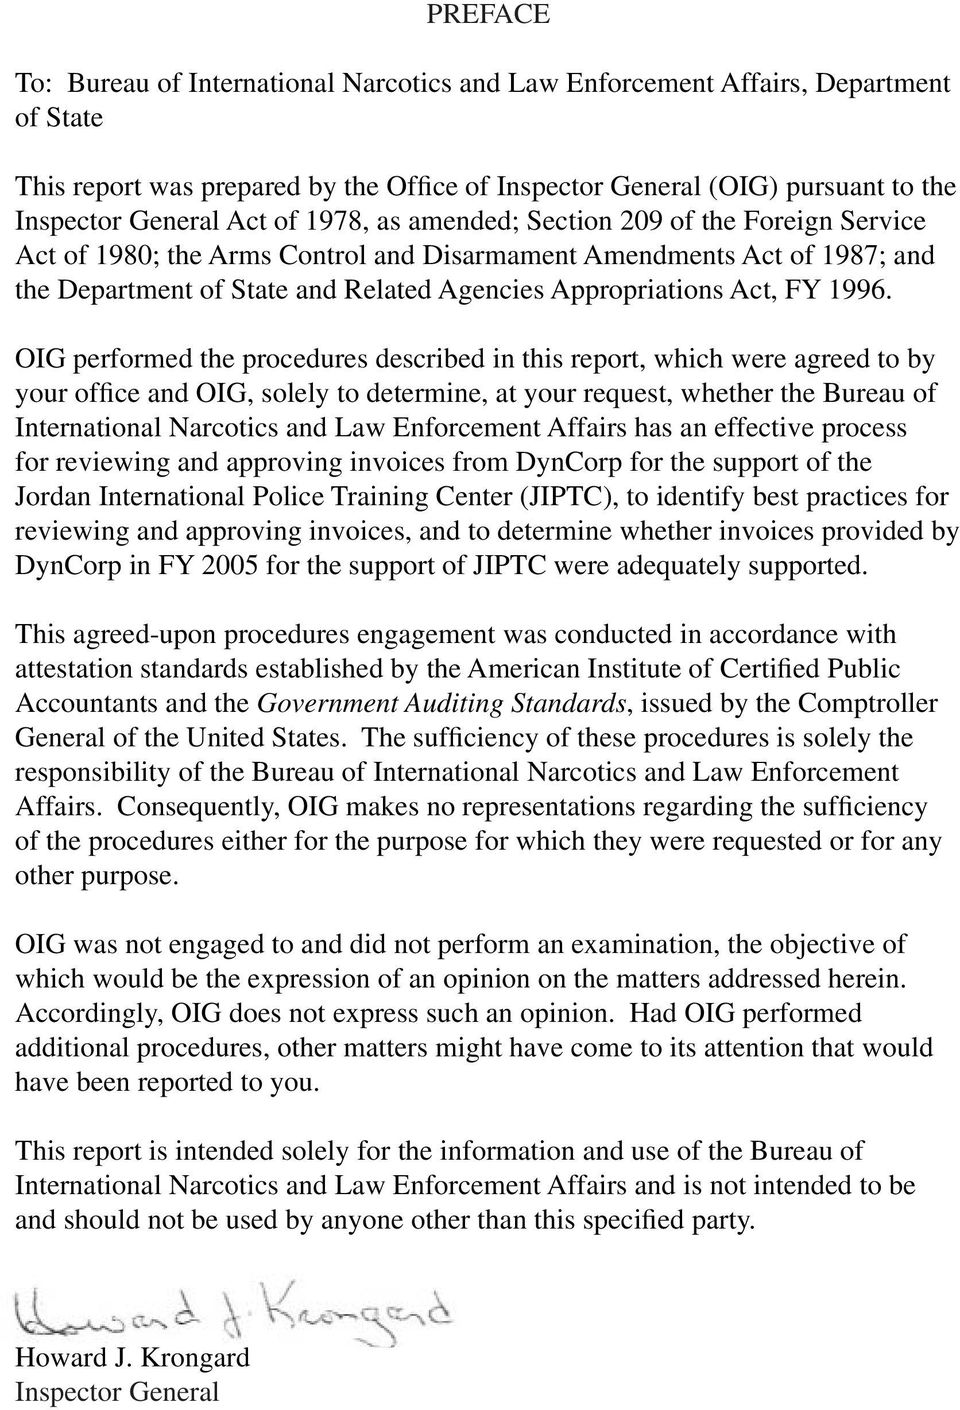 1996. OIG performed the procedures described in this report, which were agreed to by your office and OIG, solely to determine, at your request, whether the Bureau of International Narcotics and Law